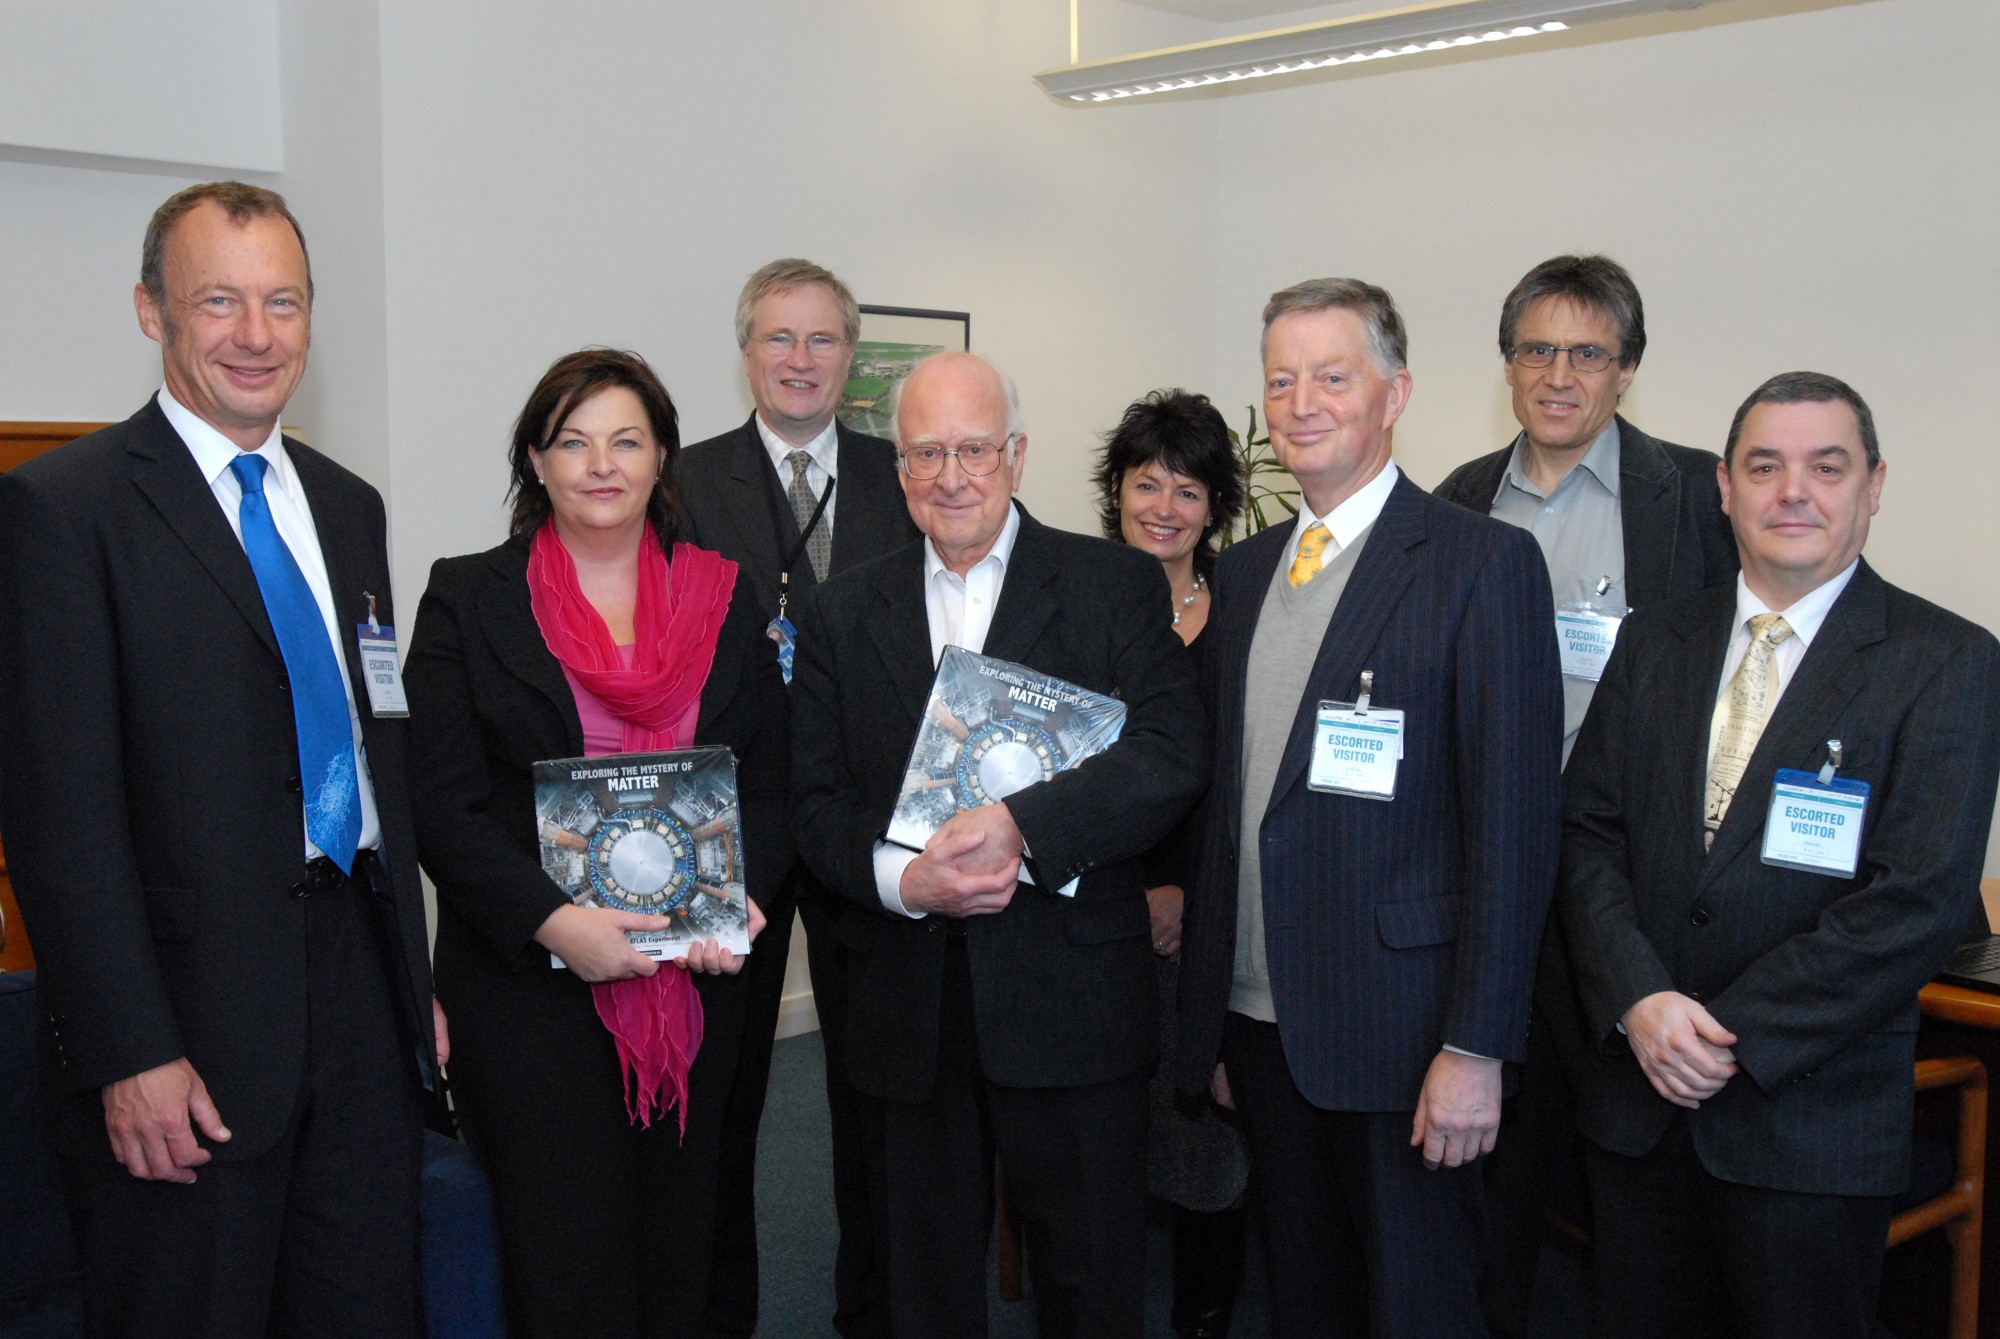 From left to right: Richard Kenway, Fiona Hyslop, Peter Higgs, Anne Glover, Ken Smith, Peter Clark and Steve Chapman at the end of the meeting.